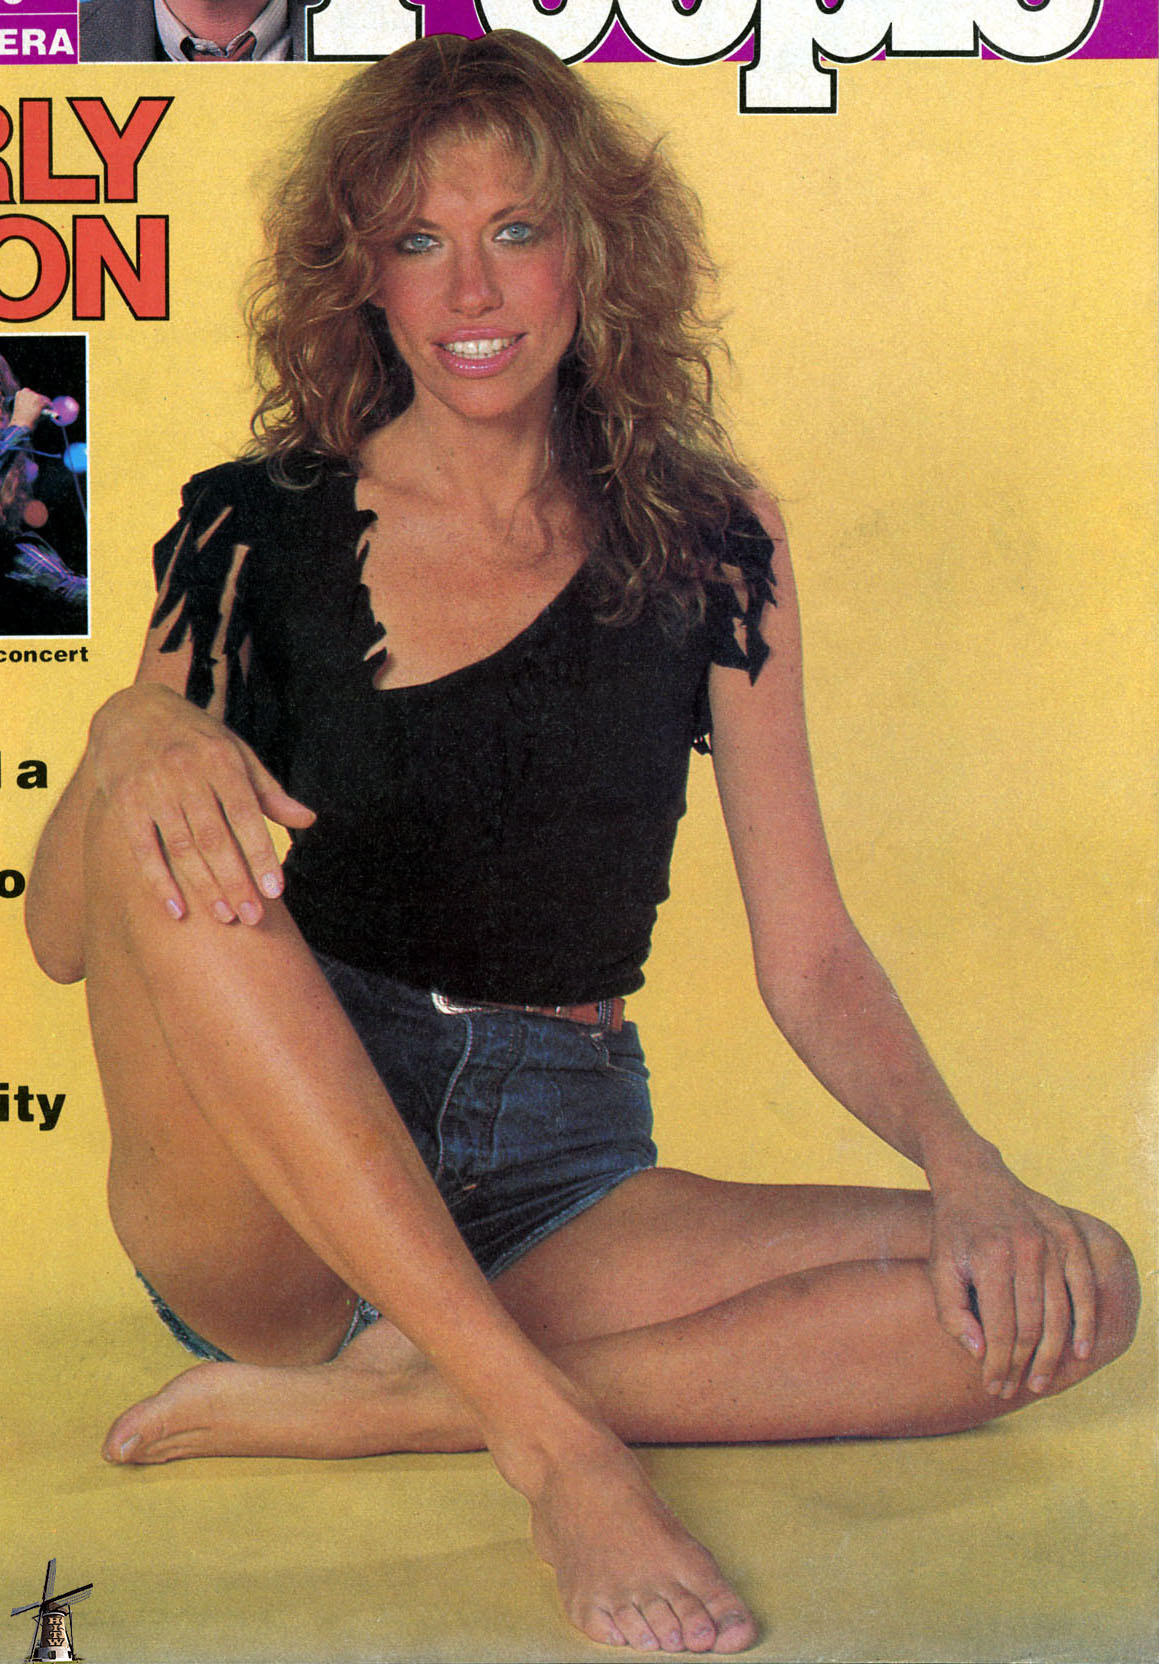 Naked carly simon